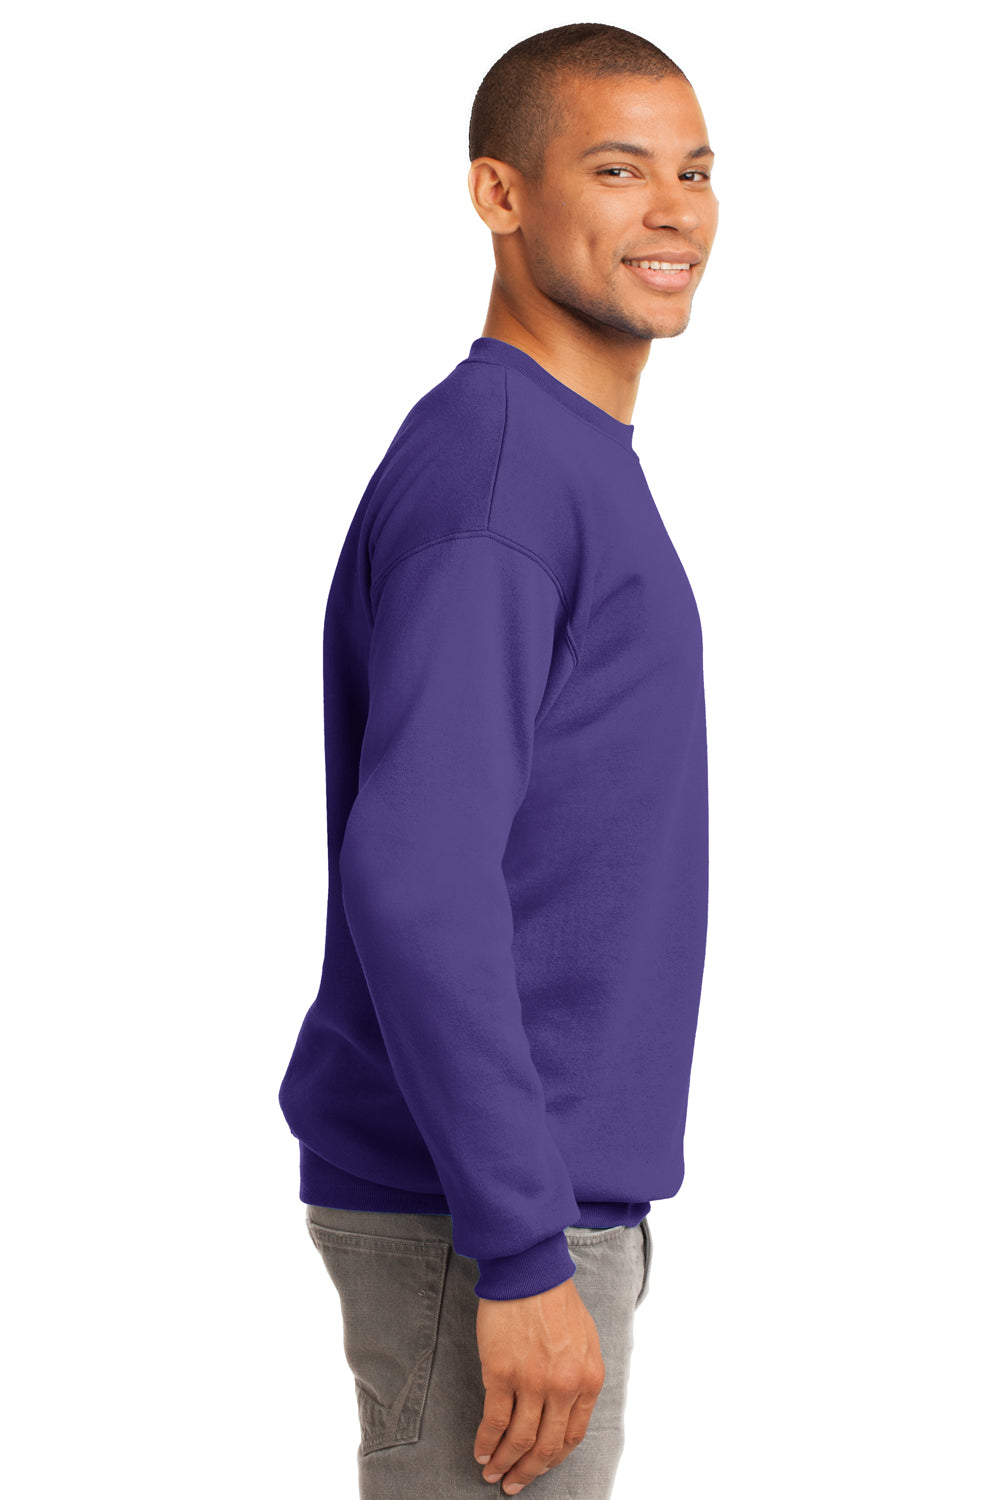 Port & Company PC90 Mens Essential Fleece Crewneck Sweatshirt Purple Side